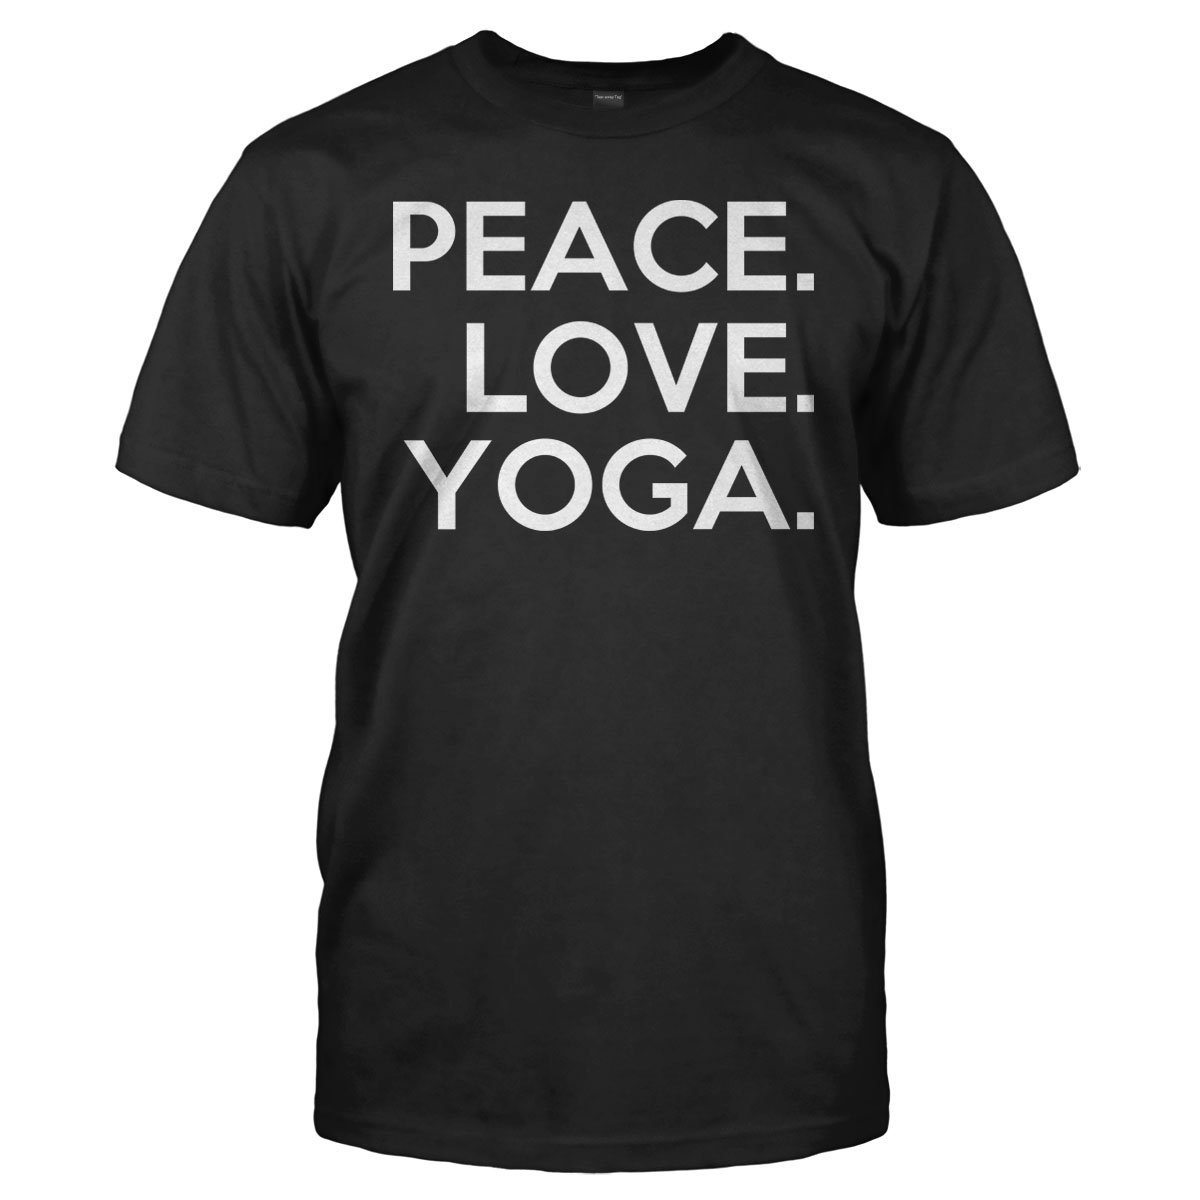 Peace. Love. Yoga. - T Shirt